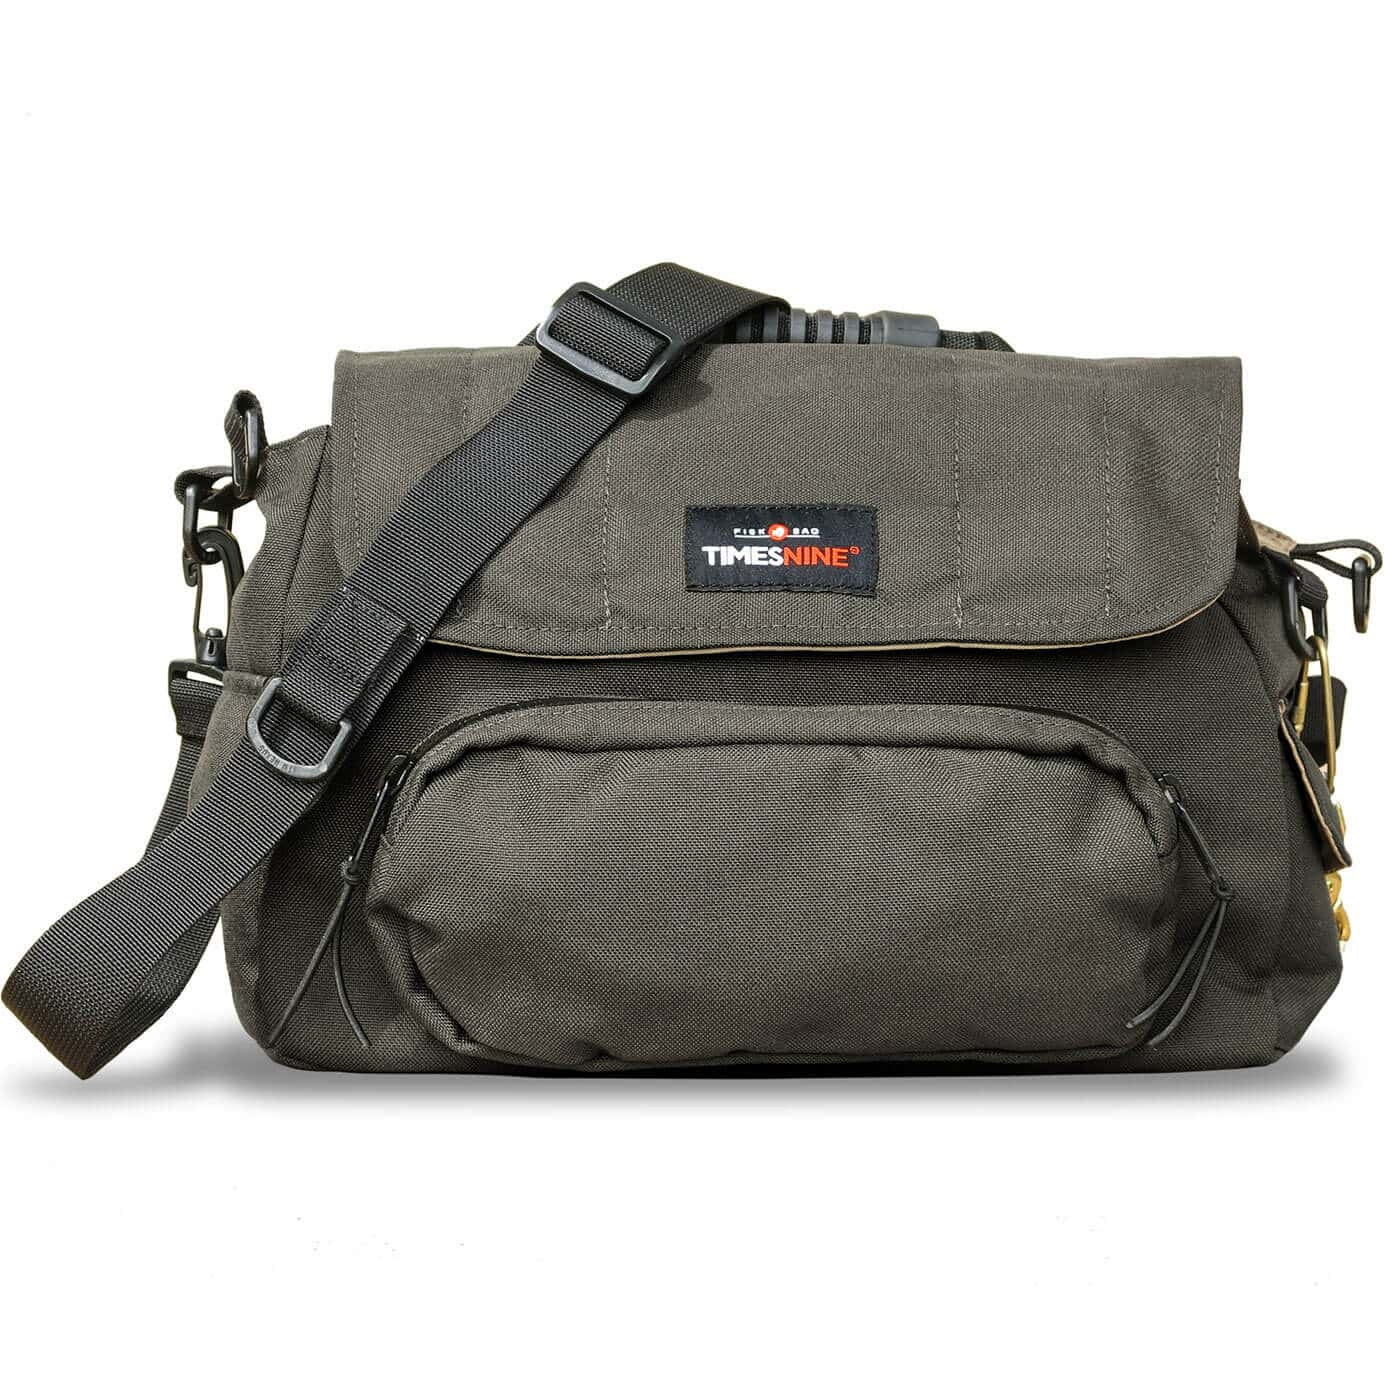 Fisk bag by timesnine fly fishing gear bag for Fly fishing bag